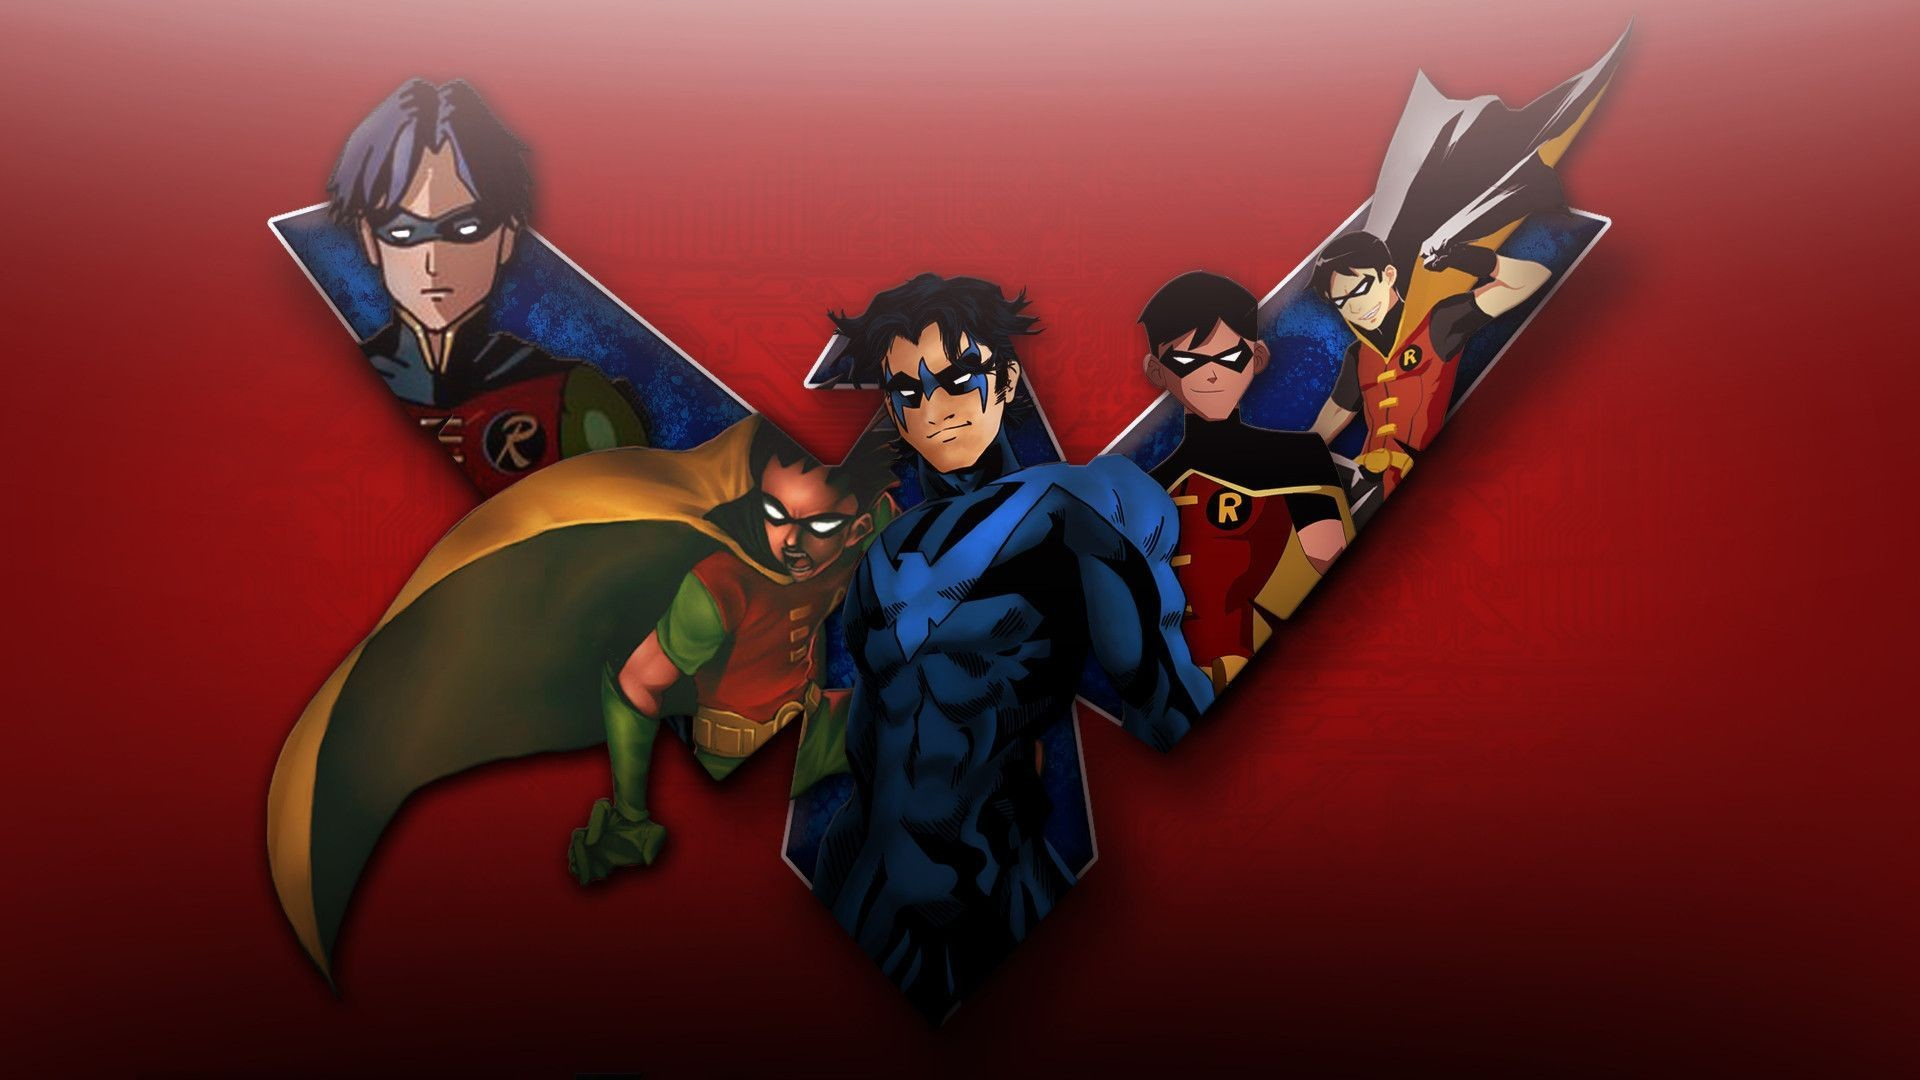 1920x1080 Nightwing New 52 Wallpaper Phone For Desktop Wallpaper 1920 x 1080 px  623.08 KB arkham city